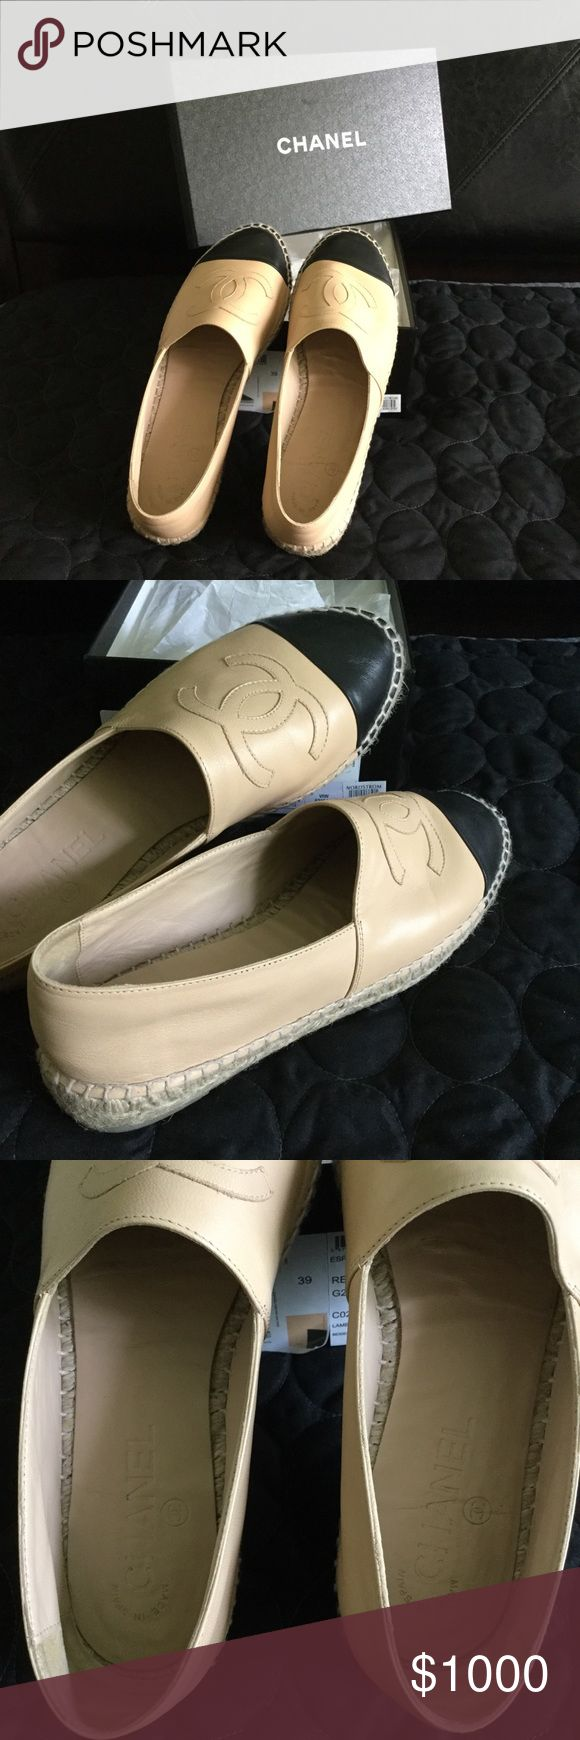 💯% AUTHENTIC CHANEL ESPADRILLES BEIGE/BLACK SOLD OUT in Boutiques▪️Lambskin Beige/Black Chanel Espadrilles ▪️ Size 39 ▪️ worn once ▪️Firm on price ▪️No trades CHANEL Shoes